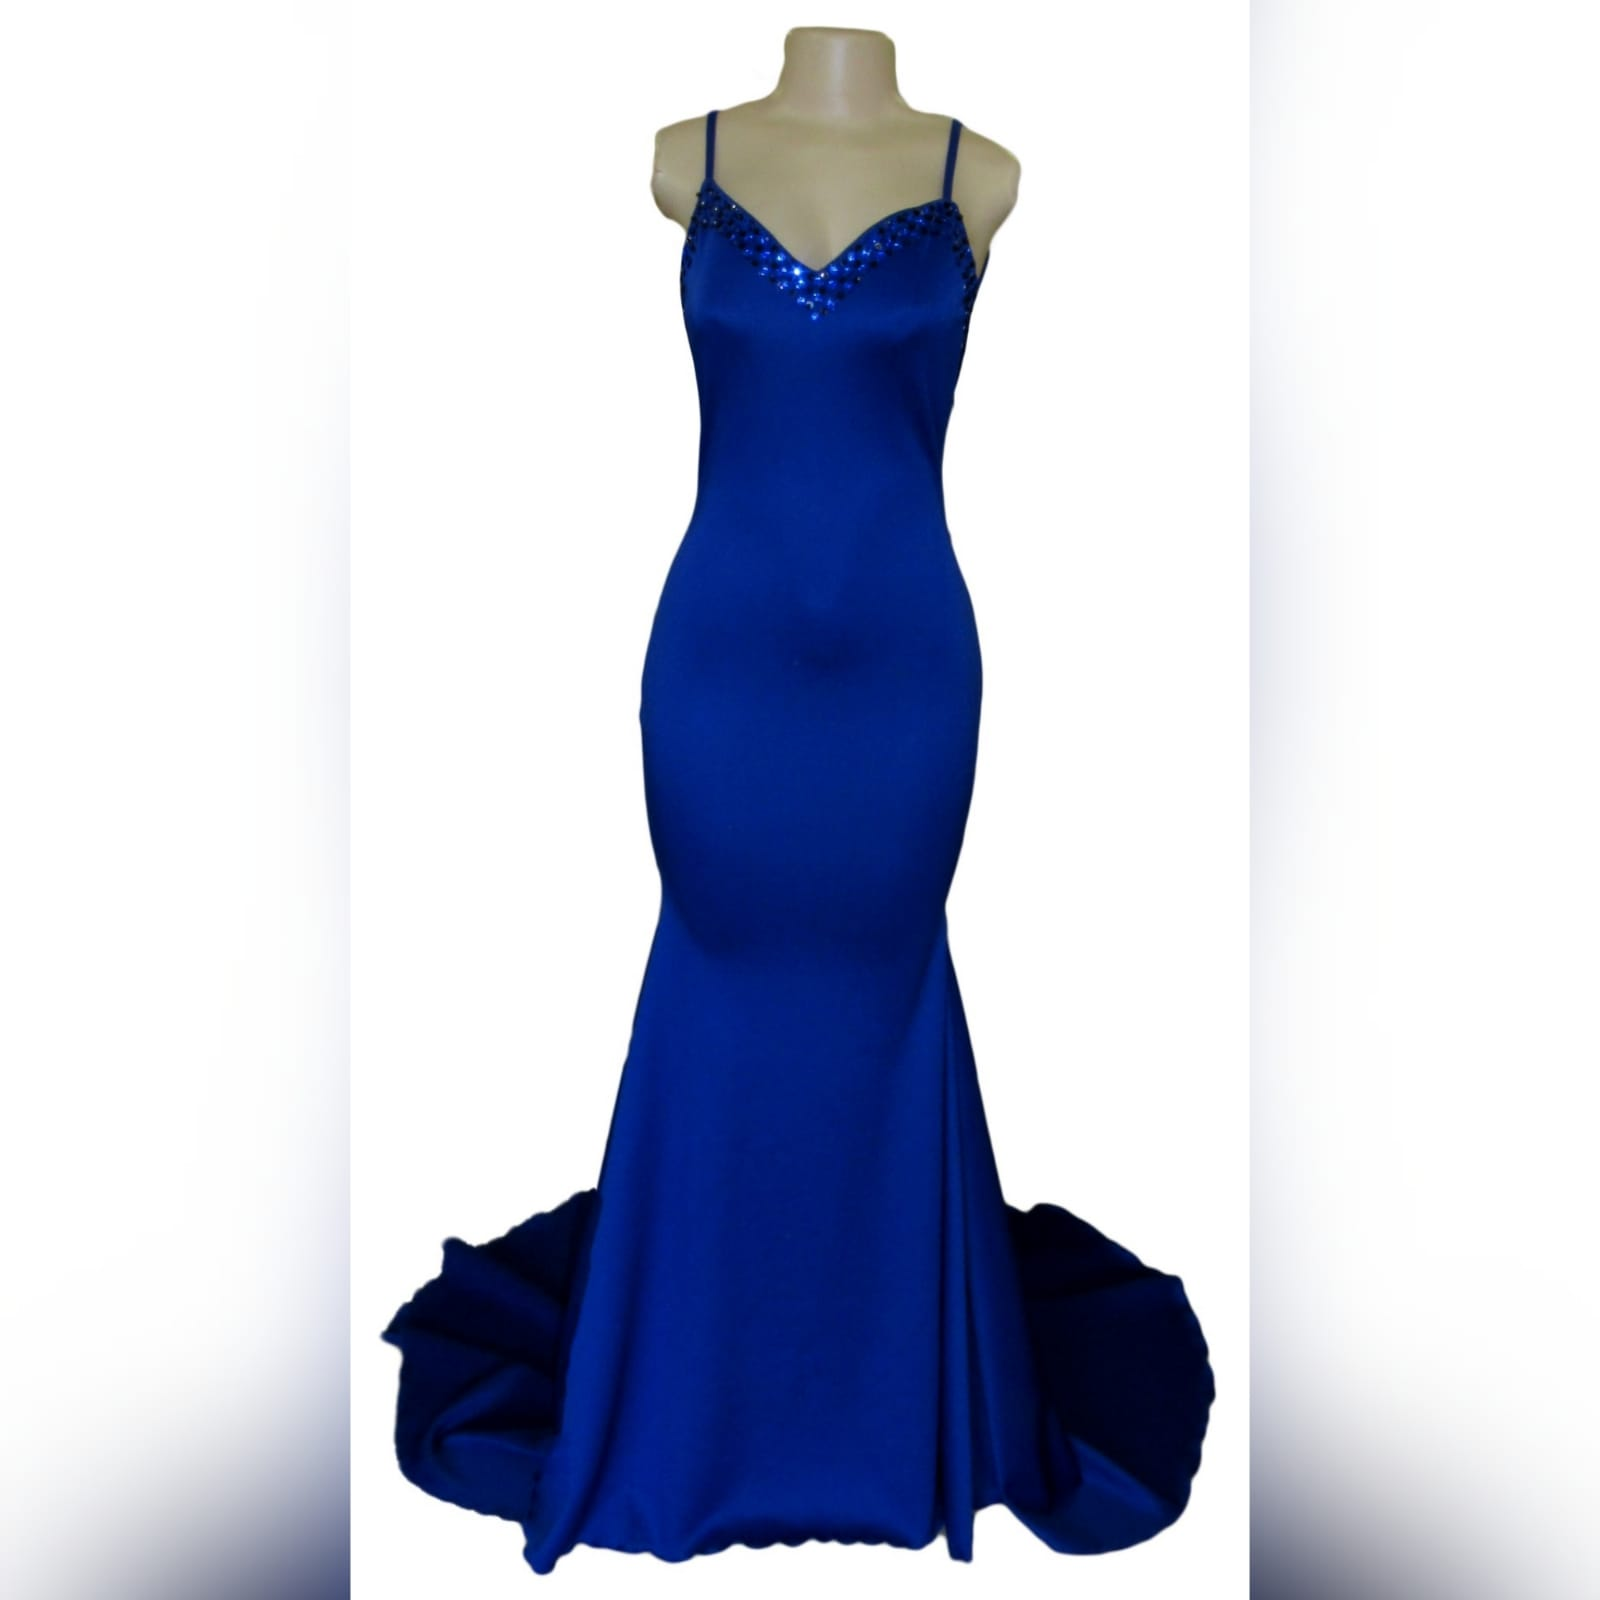 Royal blue soft mermaid beaded prom dress 2 royal blue soft mermaid beaded prom dress, with a v neckline, low v open back detailed with blue and black beads, thin shoulder straps and a long train.